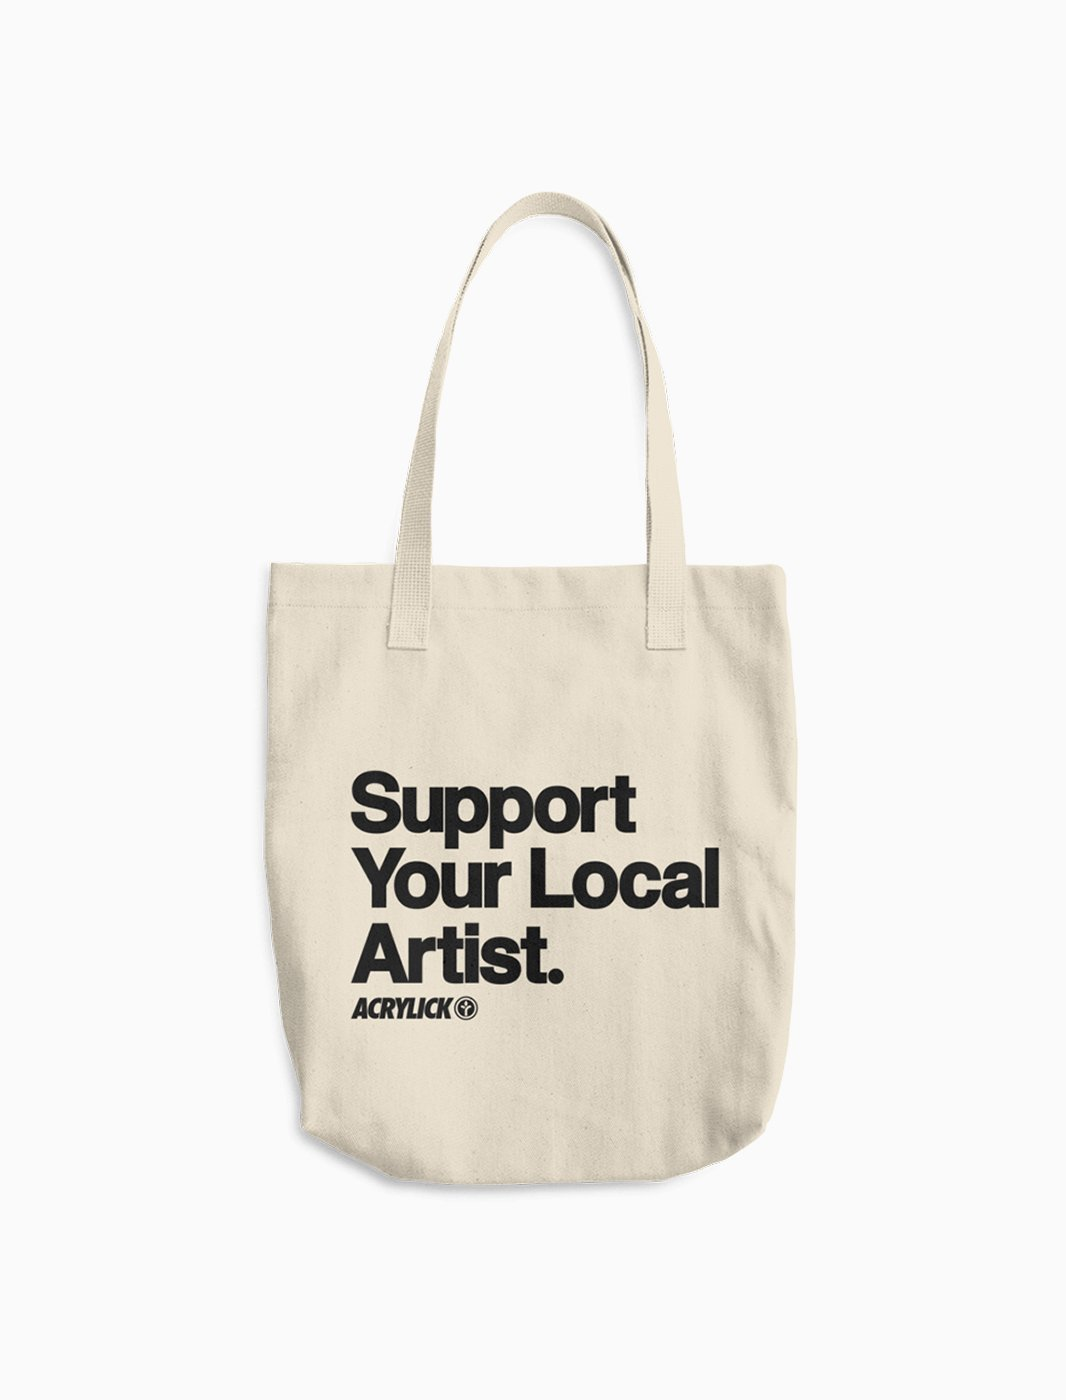 Tote Bag - Canvas - Acrylick - Support Your Local Artist